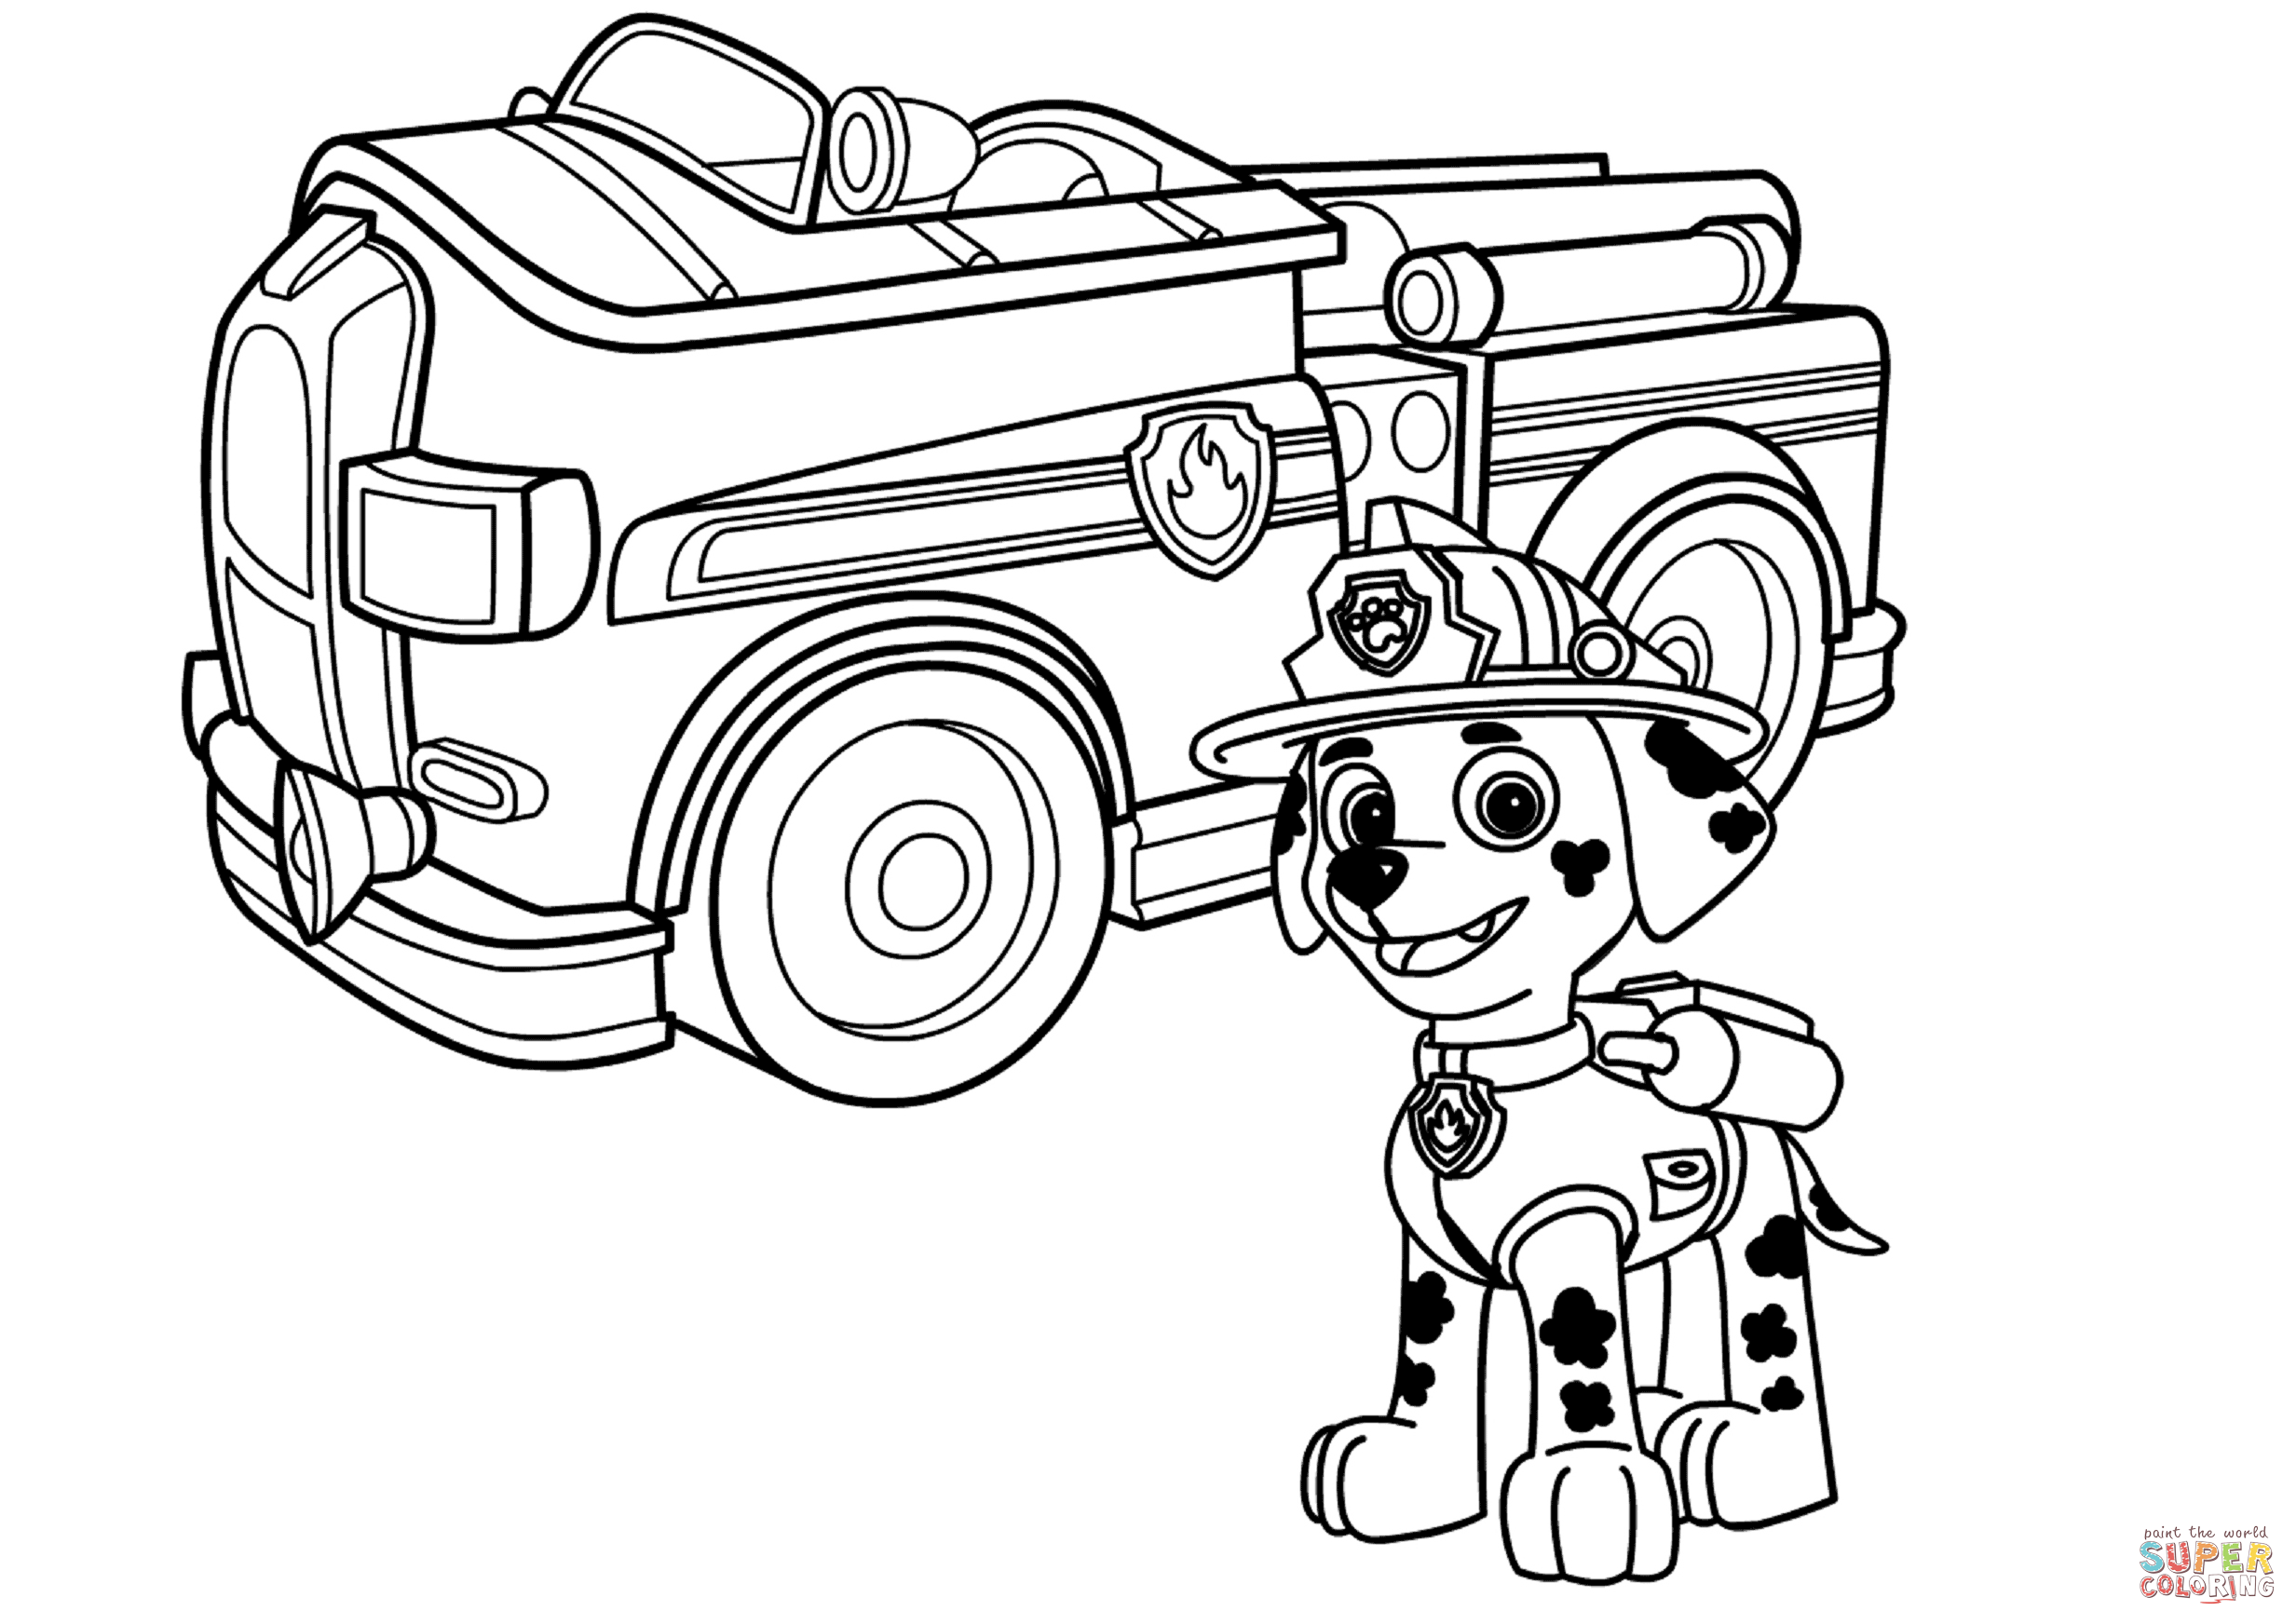 Cars Auto Ausmalbilder : Cars And Trucks Drawing At Getdrawings Com Free For Personal Use